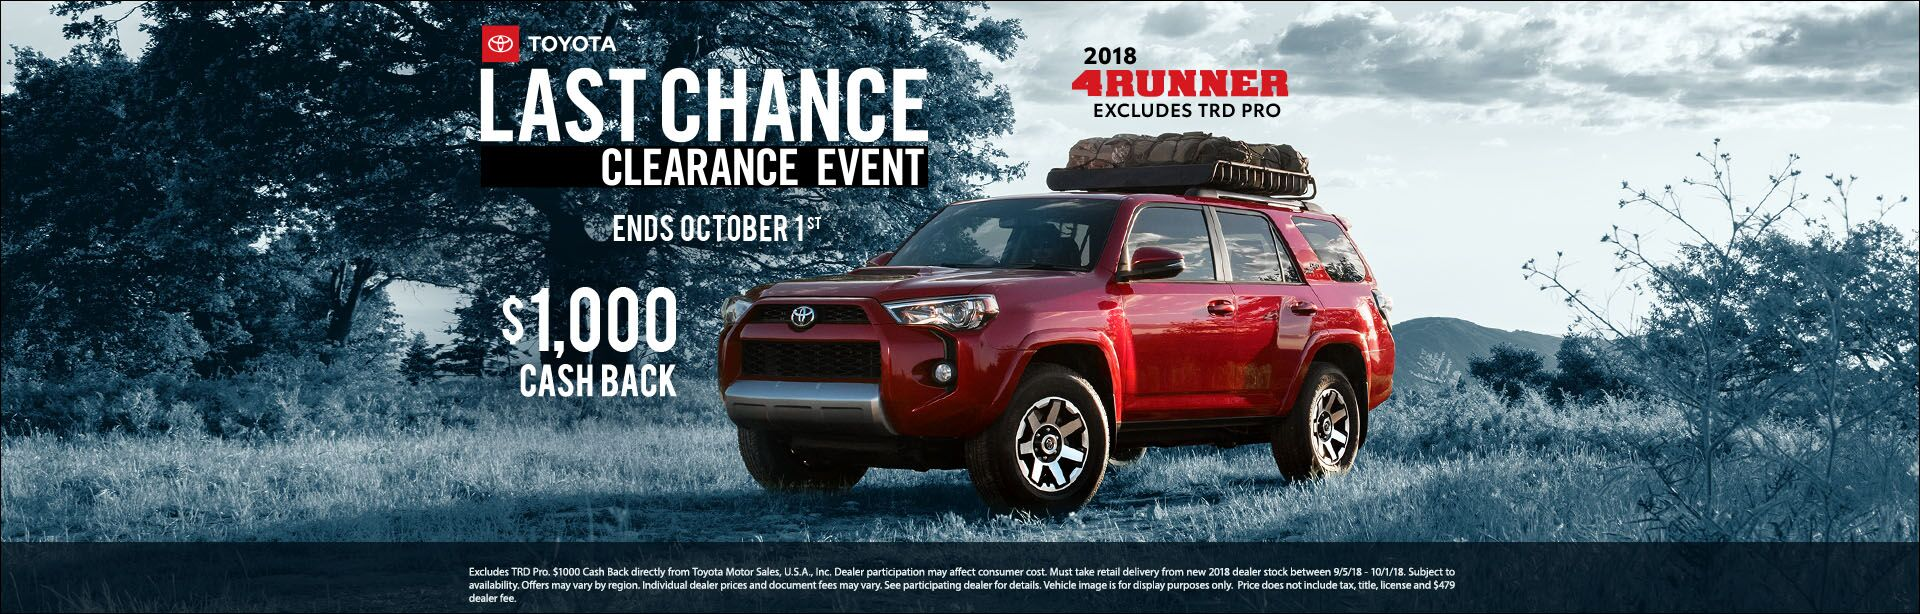 Toyota south new used cars richmond ky 18 4runner solutioingenieria Image collections